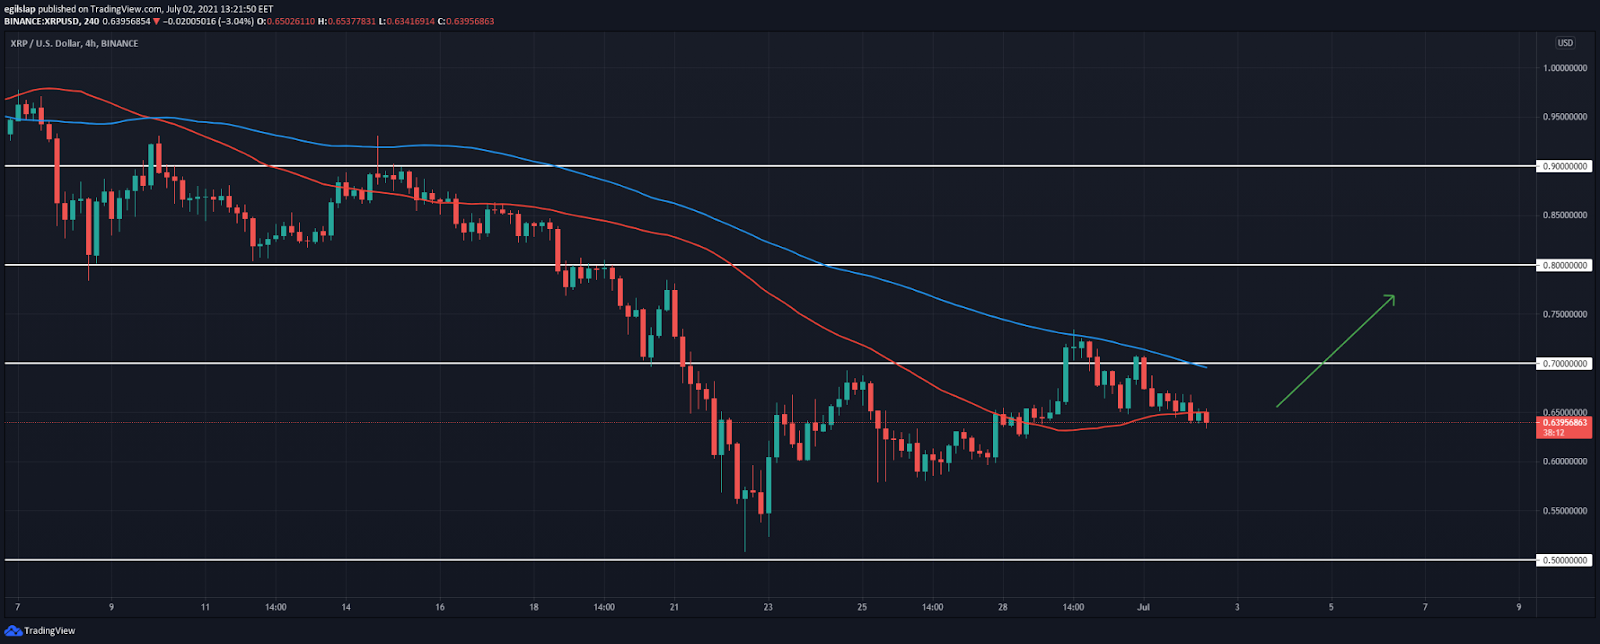 Ripple price analysis: XRP retraces from $0.74, prepares for a move to $0.80?